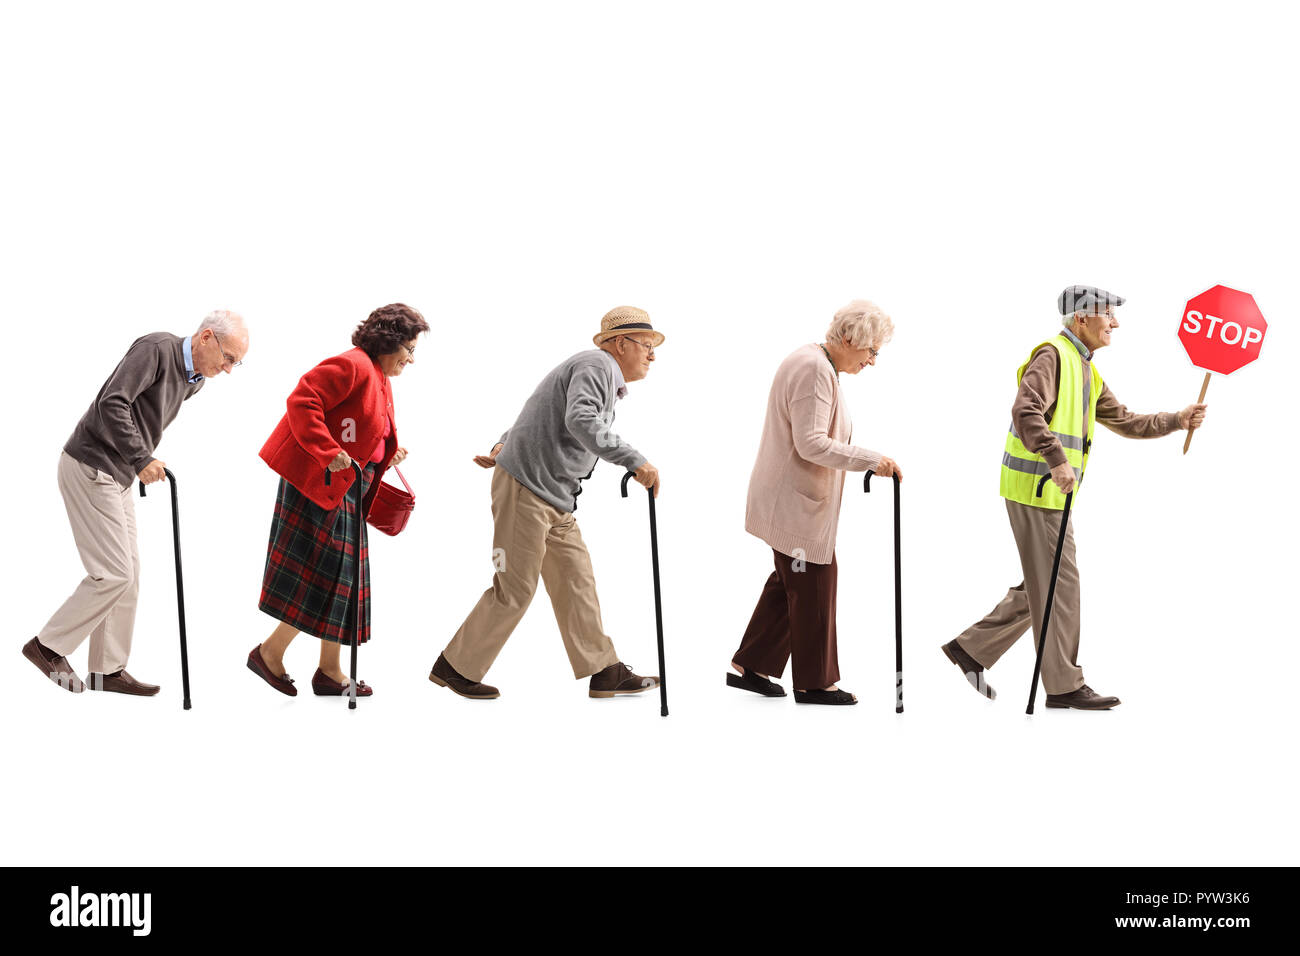 Full length shot of senior people walking in a line behind an elderly man with a safety vest and stop sign isolated on white background - Stock Image